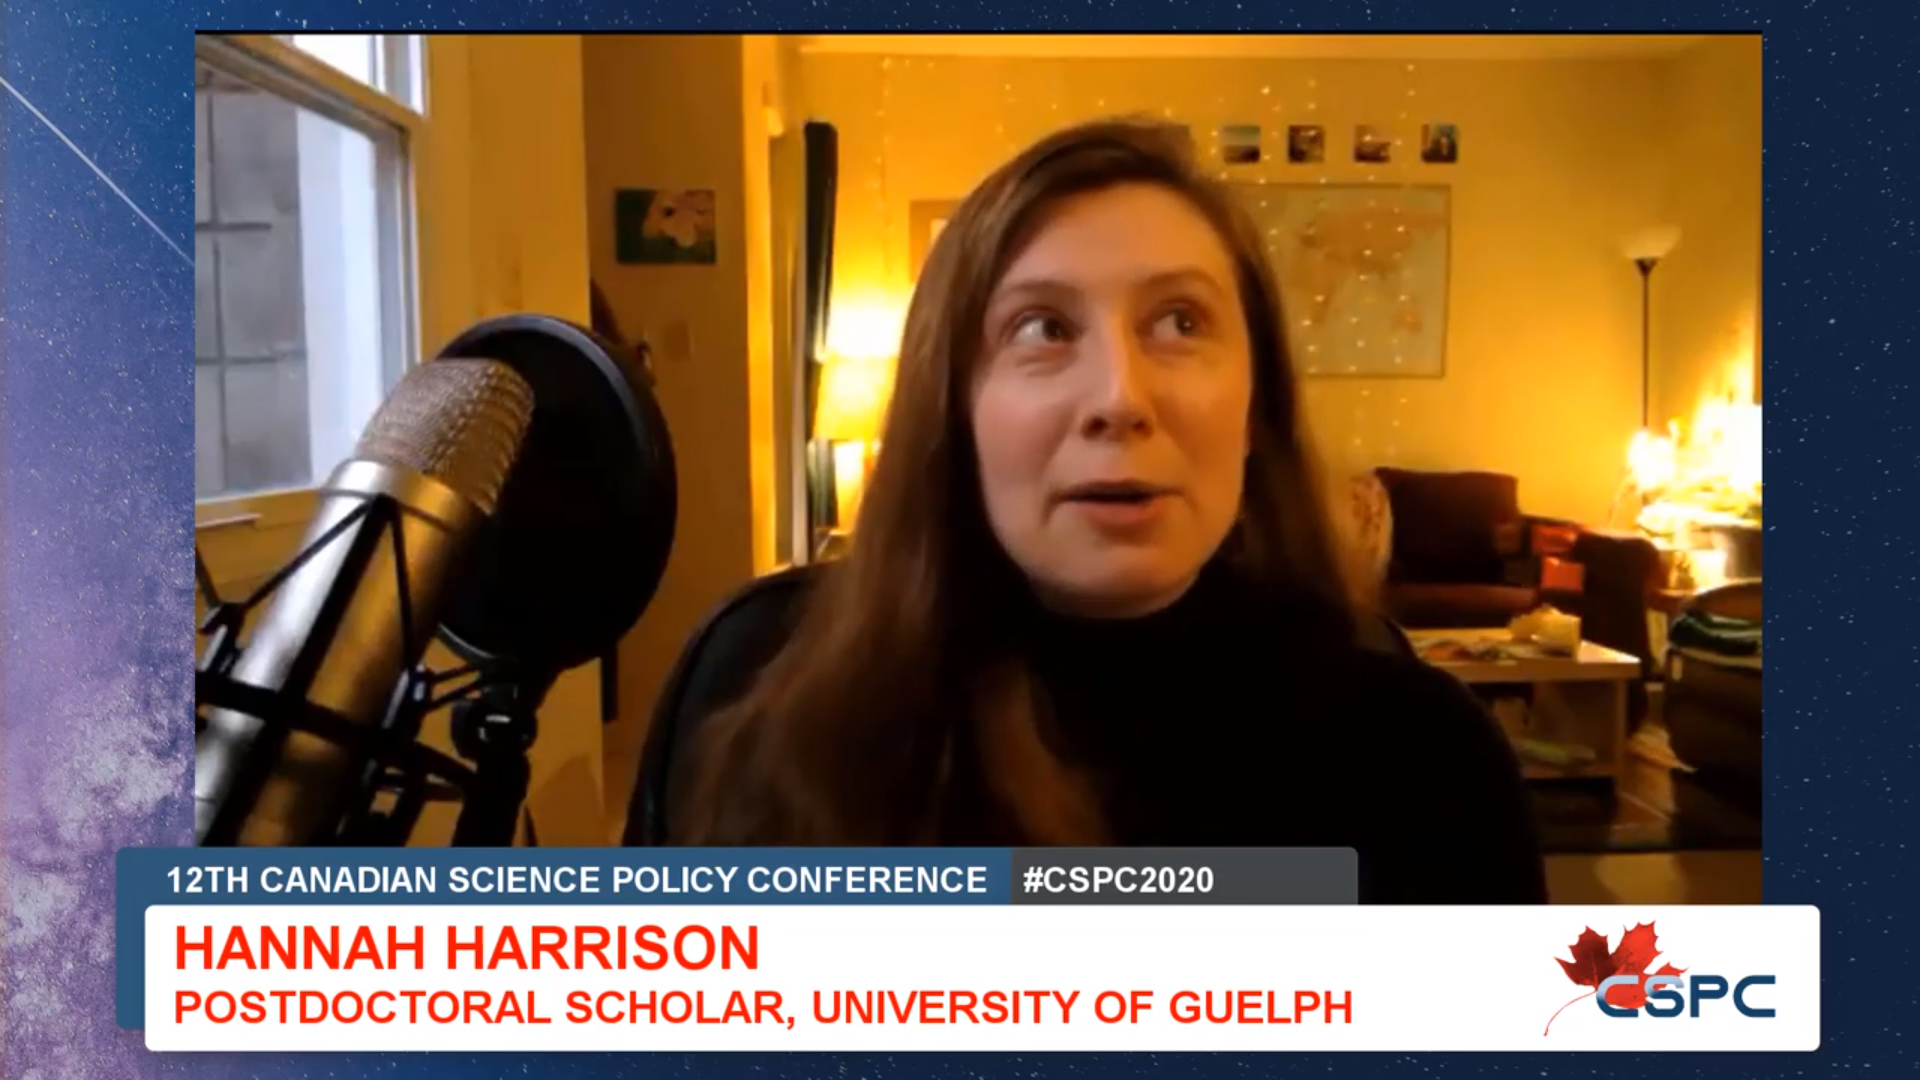 youtube screenshot of an interview, with a white woman on camera